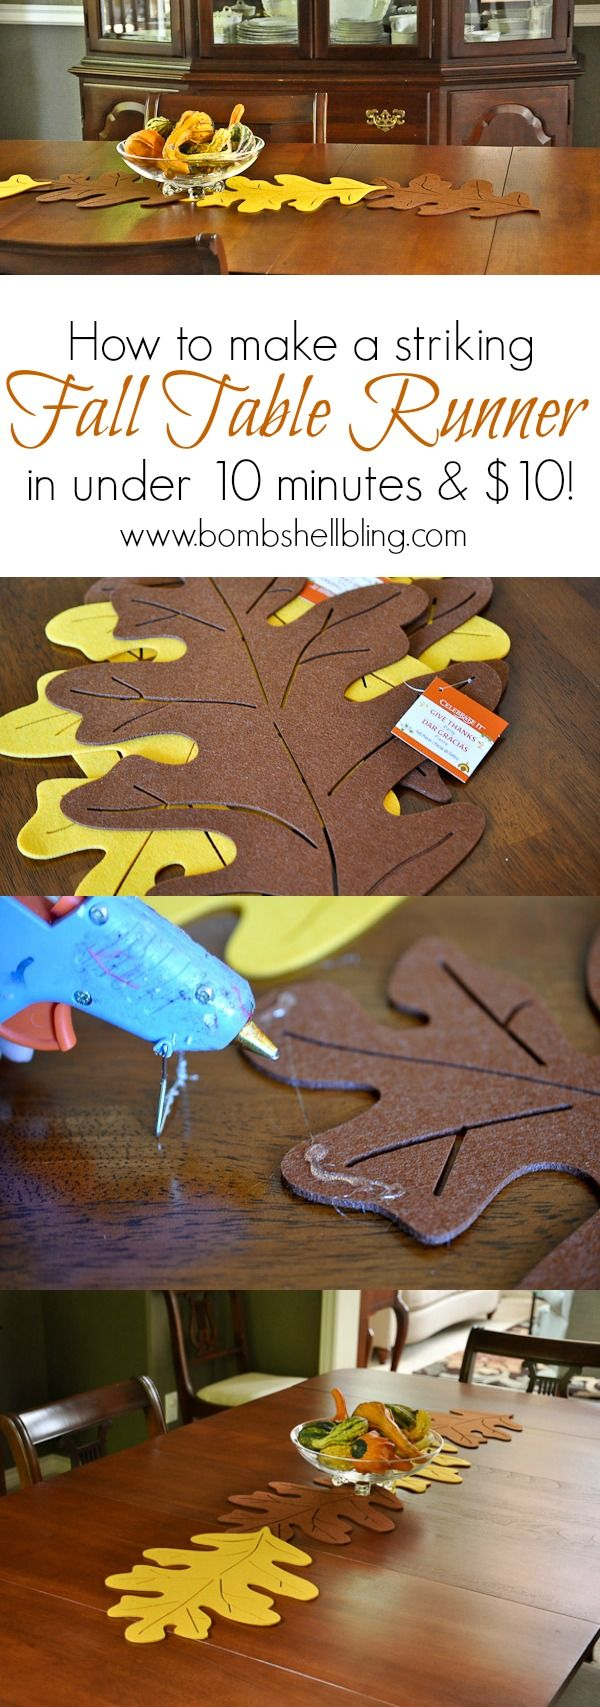 I love this fall leaf table runner that can be made for under 10 dollars in under 10 minutes!